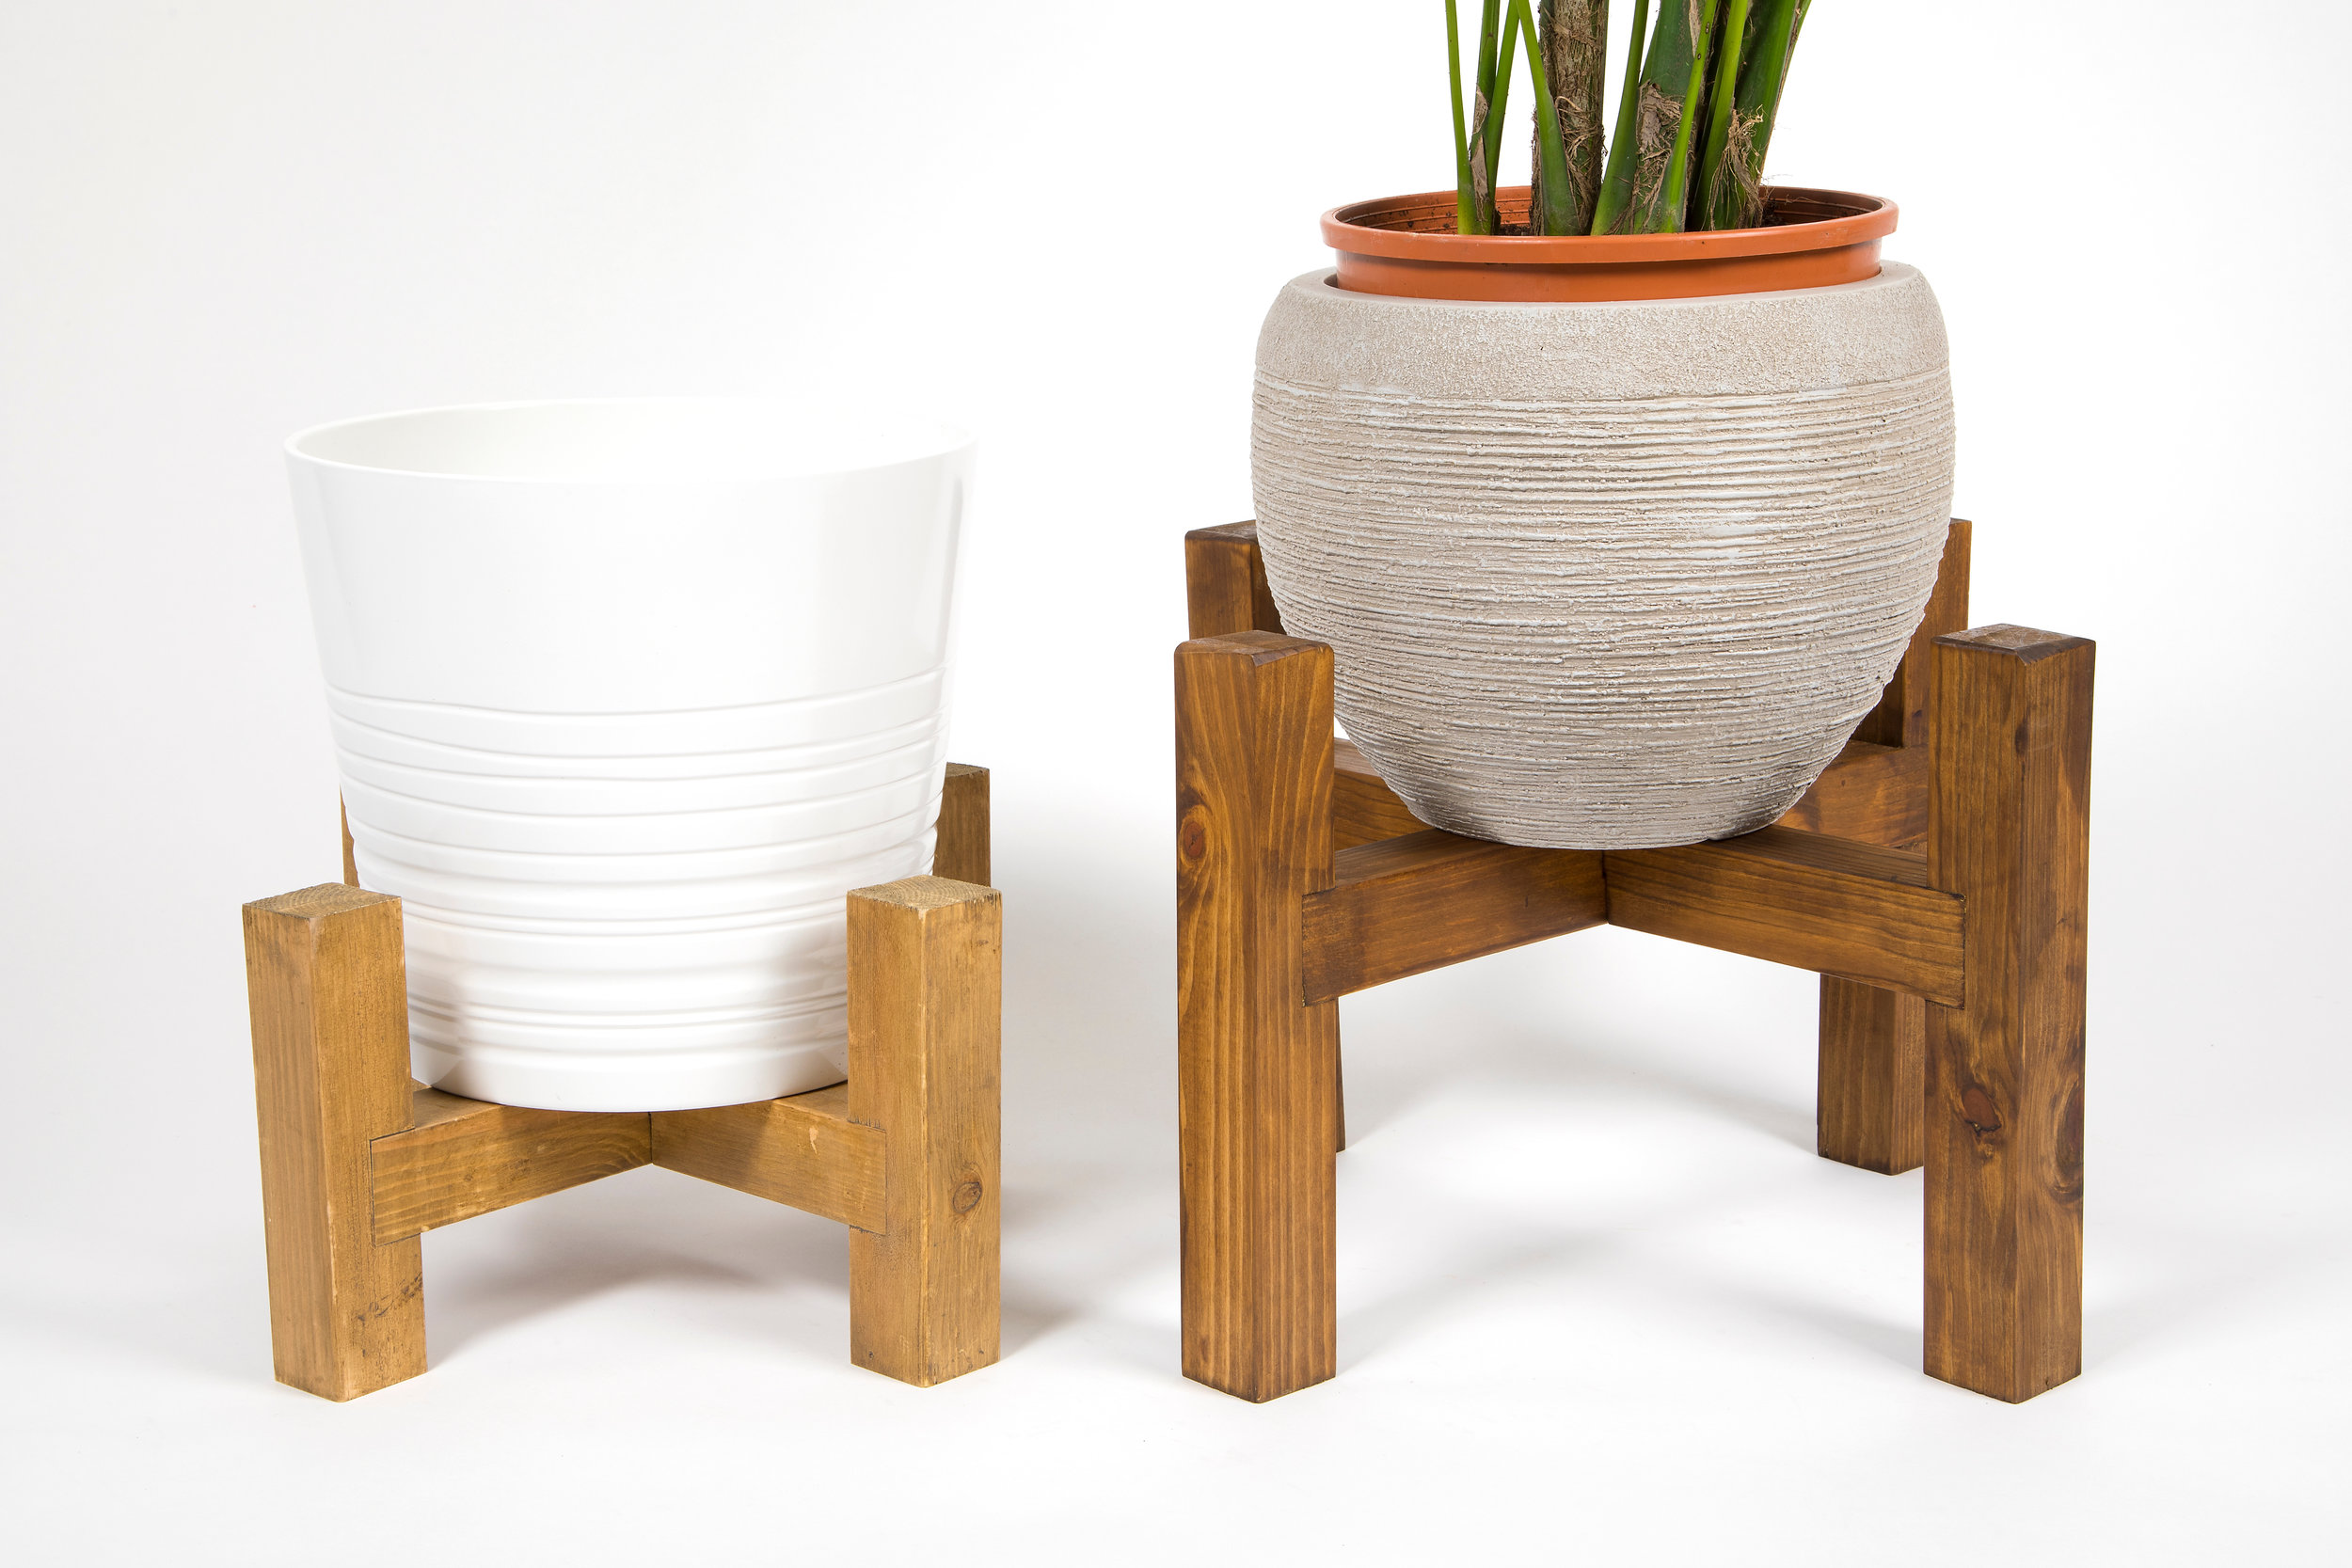 Planters and plant displays